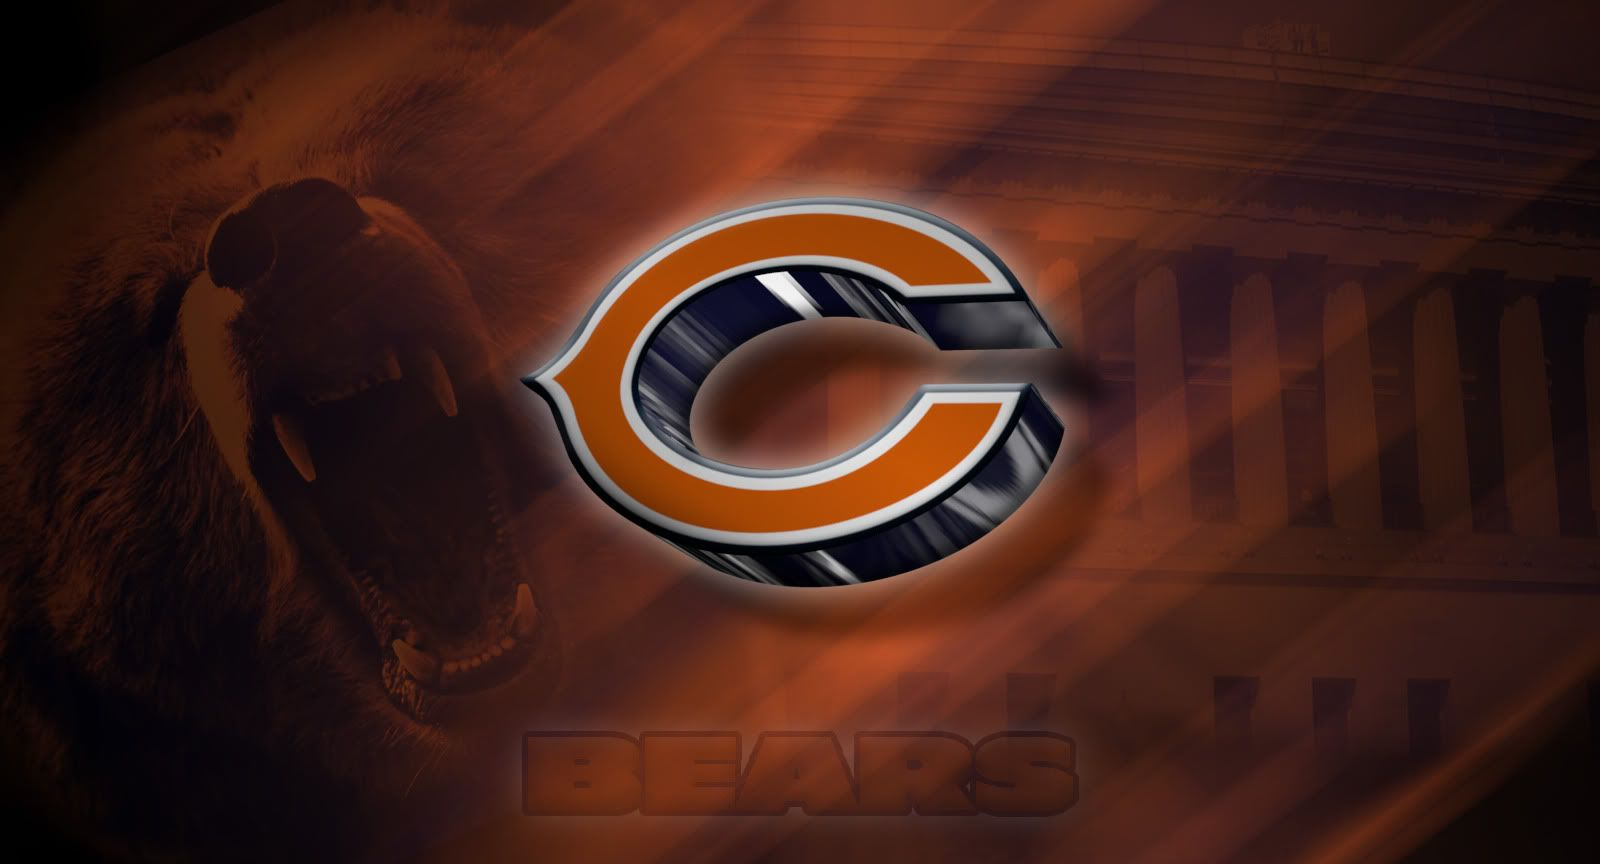 Chicago Bears Desktop Wallpaper - Wallpapers Browse